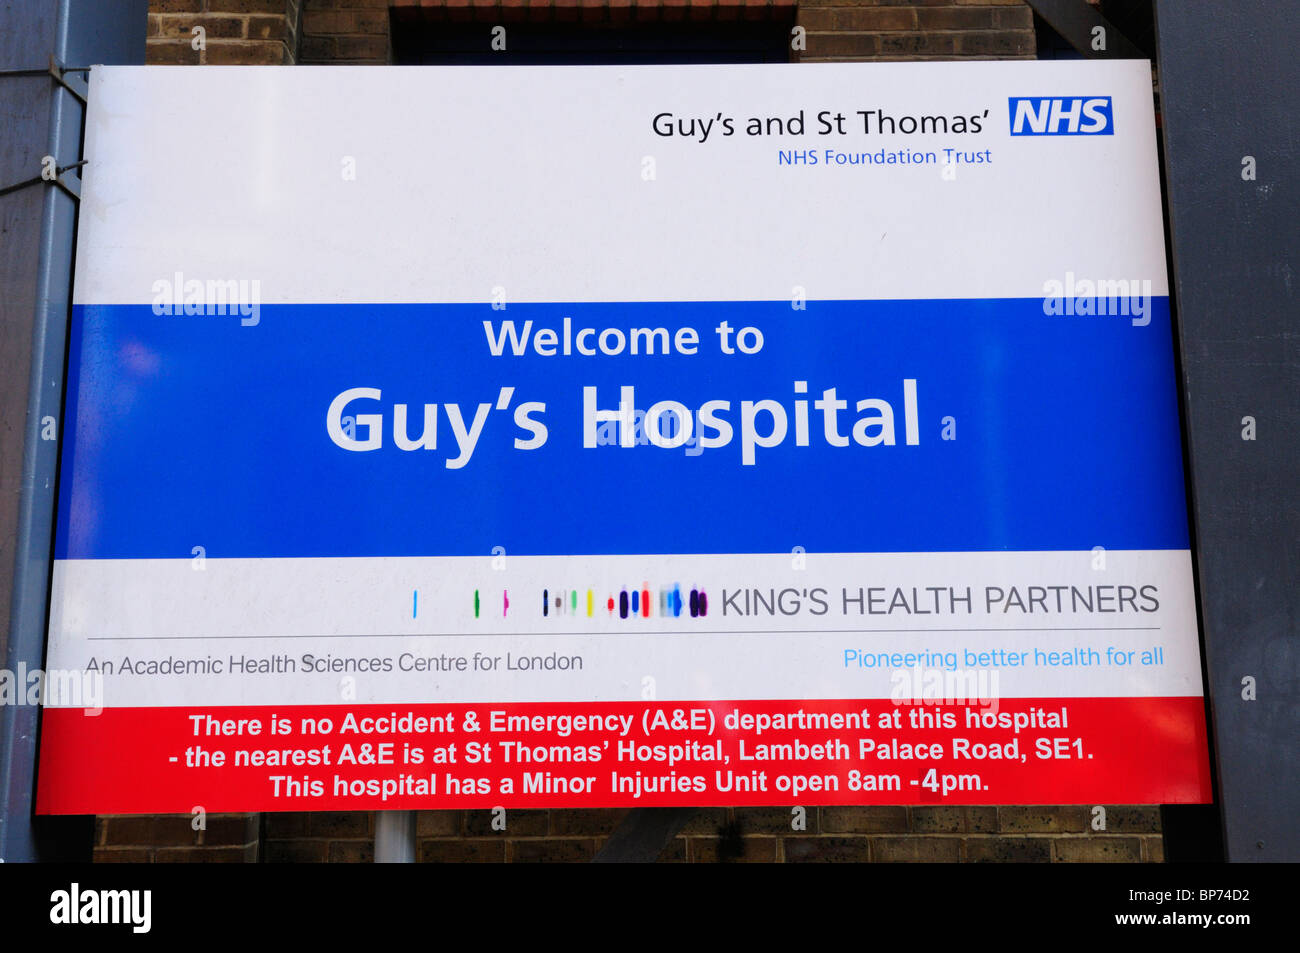 Bienvenue à Guy's Hospital signe, Southwark, Londres, Angleterre, RU Photo Stock